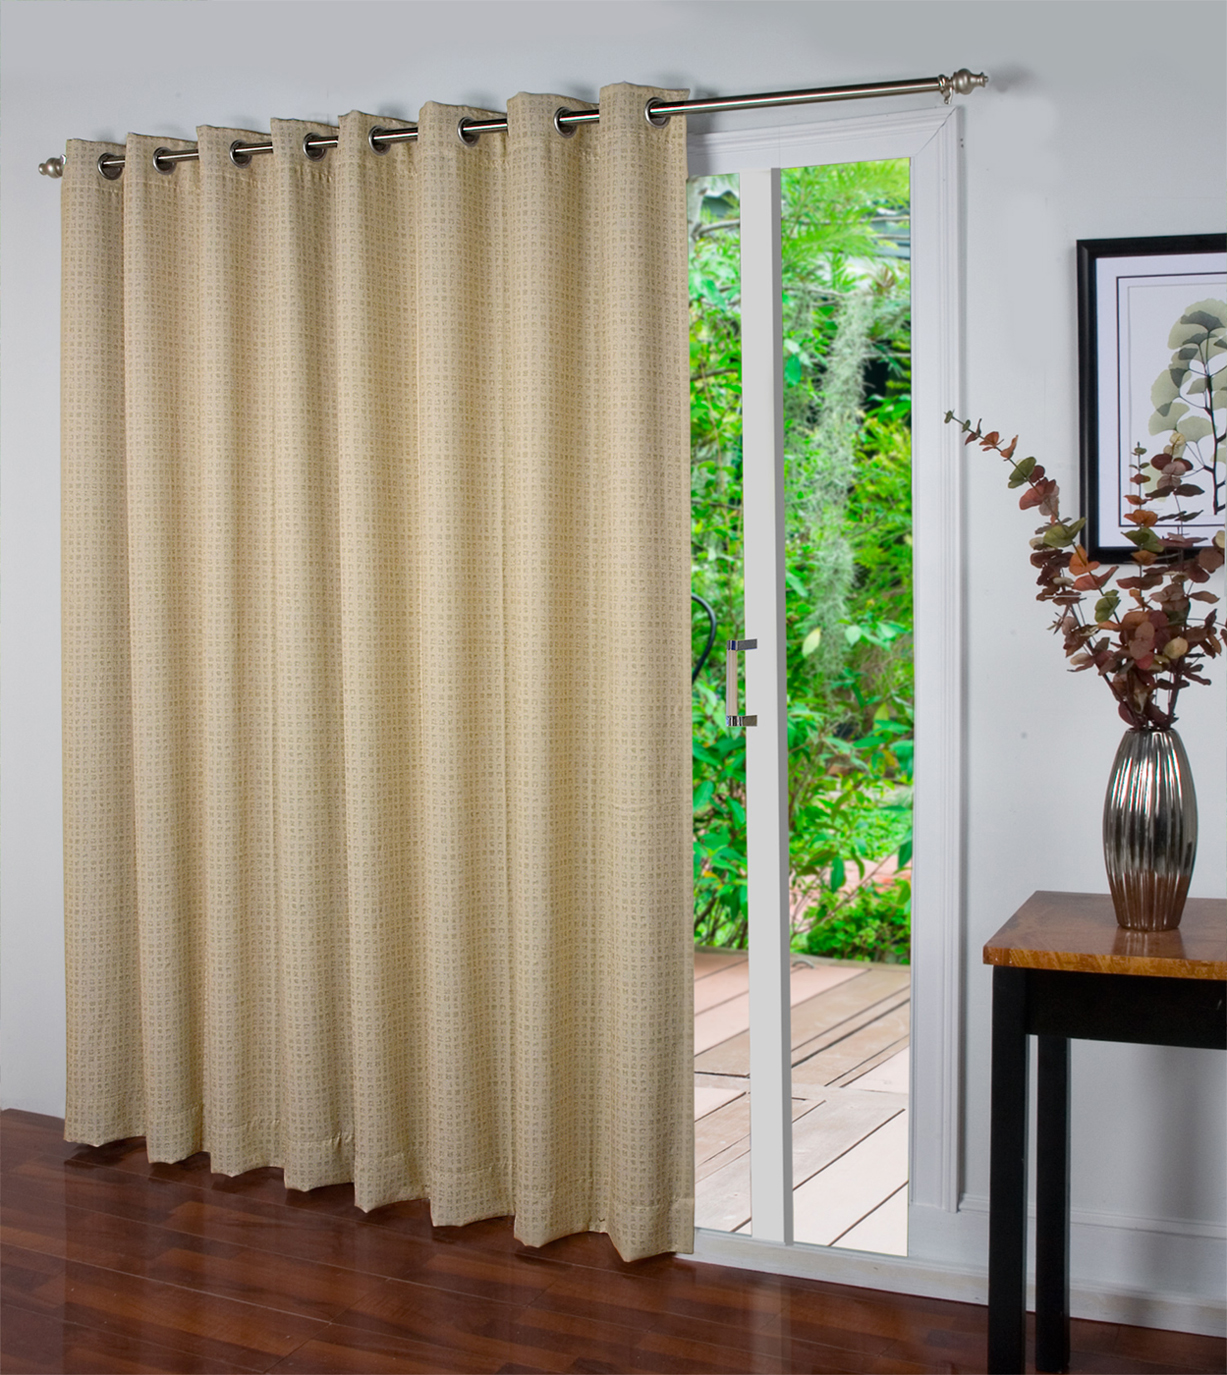 blackout panel doors pinch pleated curtain amazon crosby walmart draw slider top glass of size way patio curtains grommet for pleat sliding large door drapes